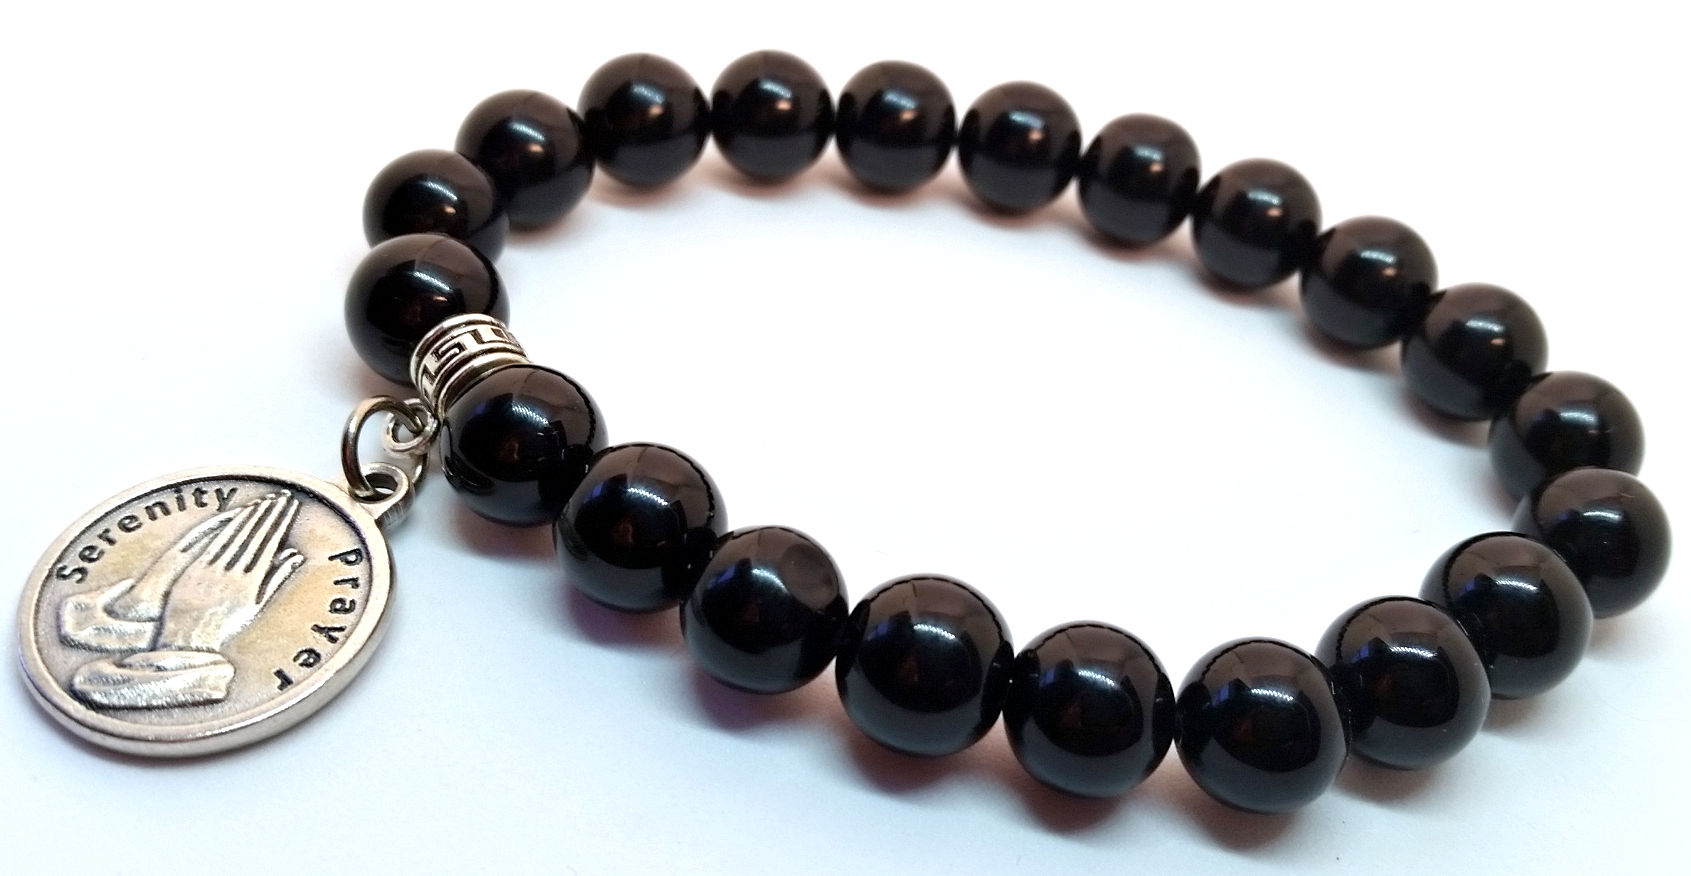 Black Onyx Serenity Prayer Bracelet, by Charmed Recovery